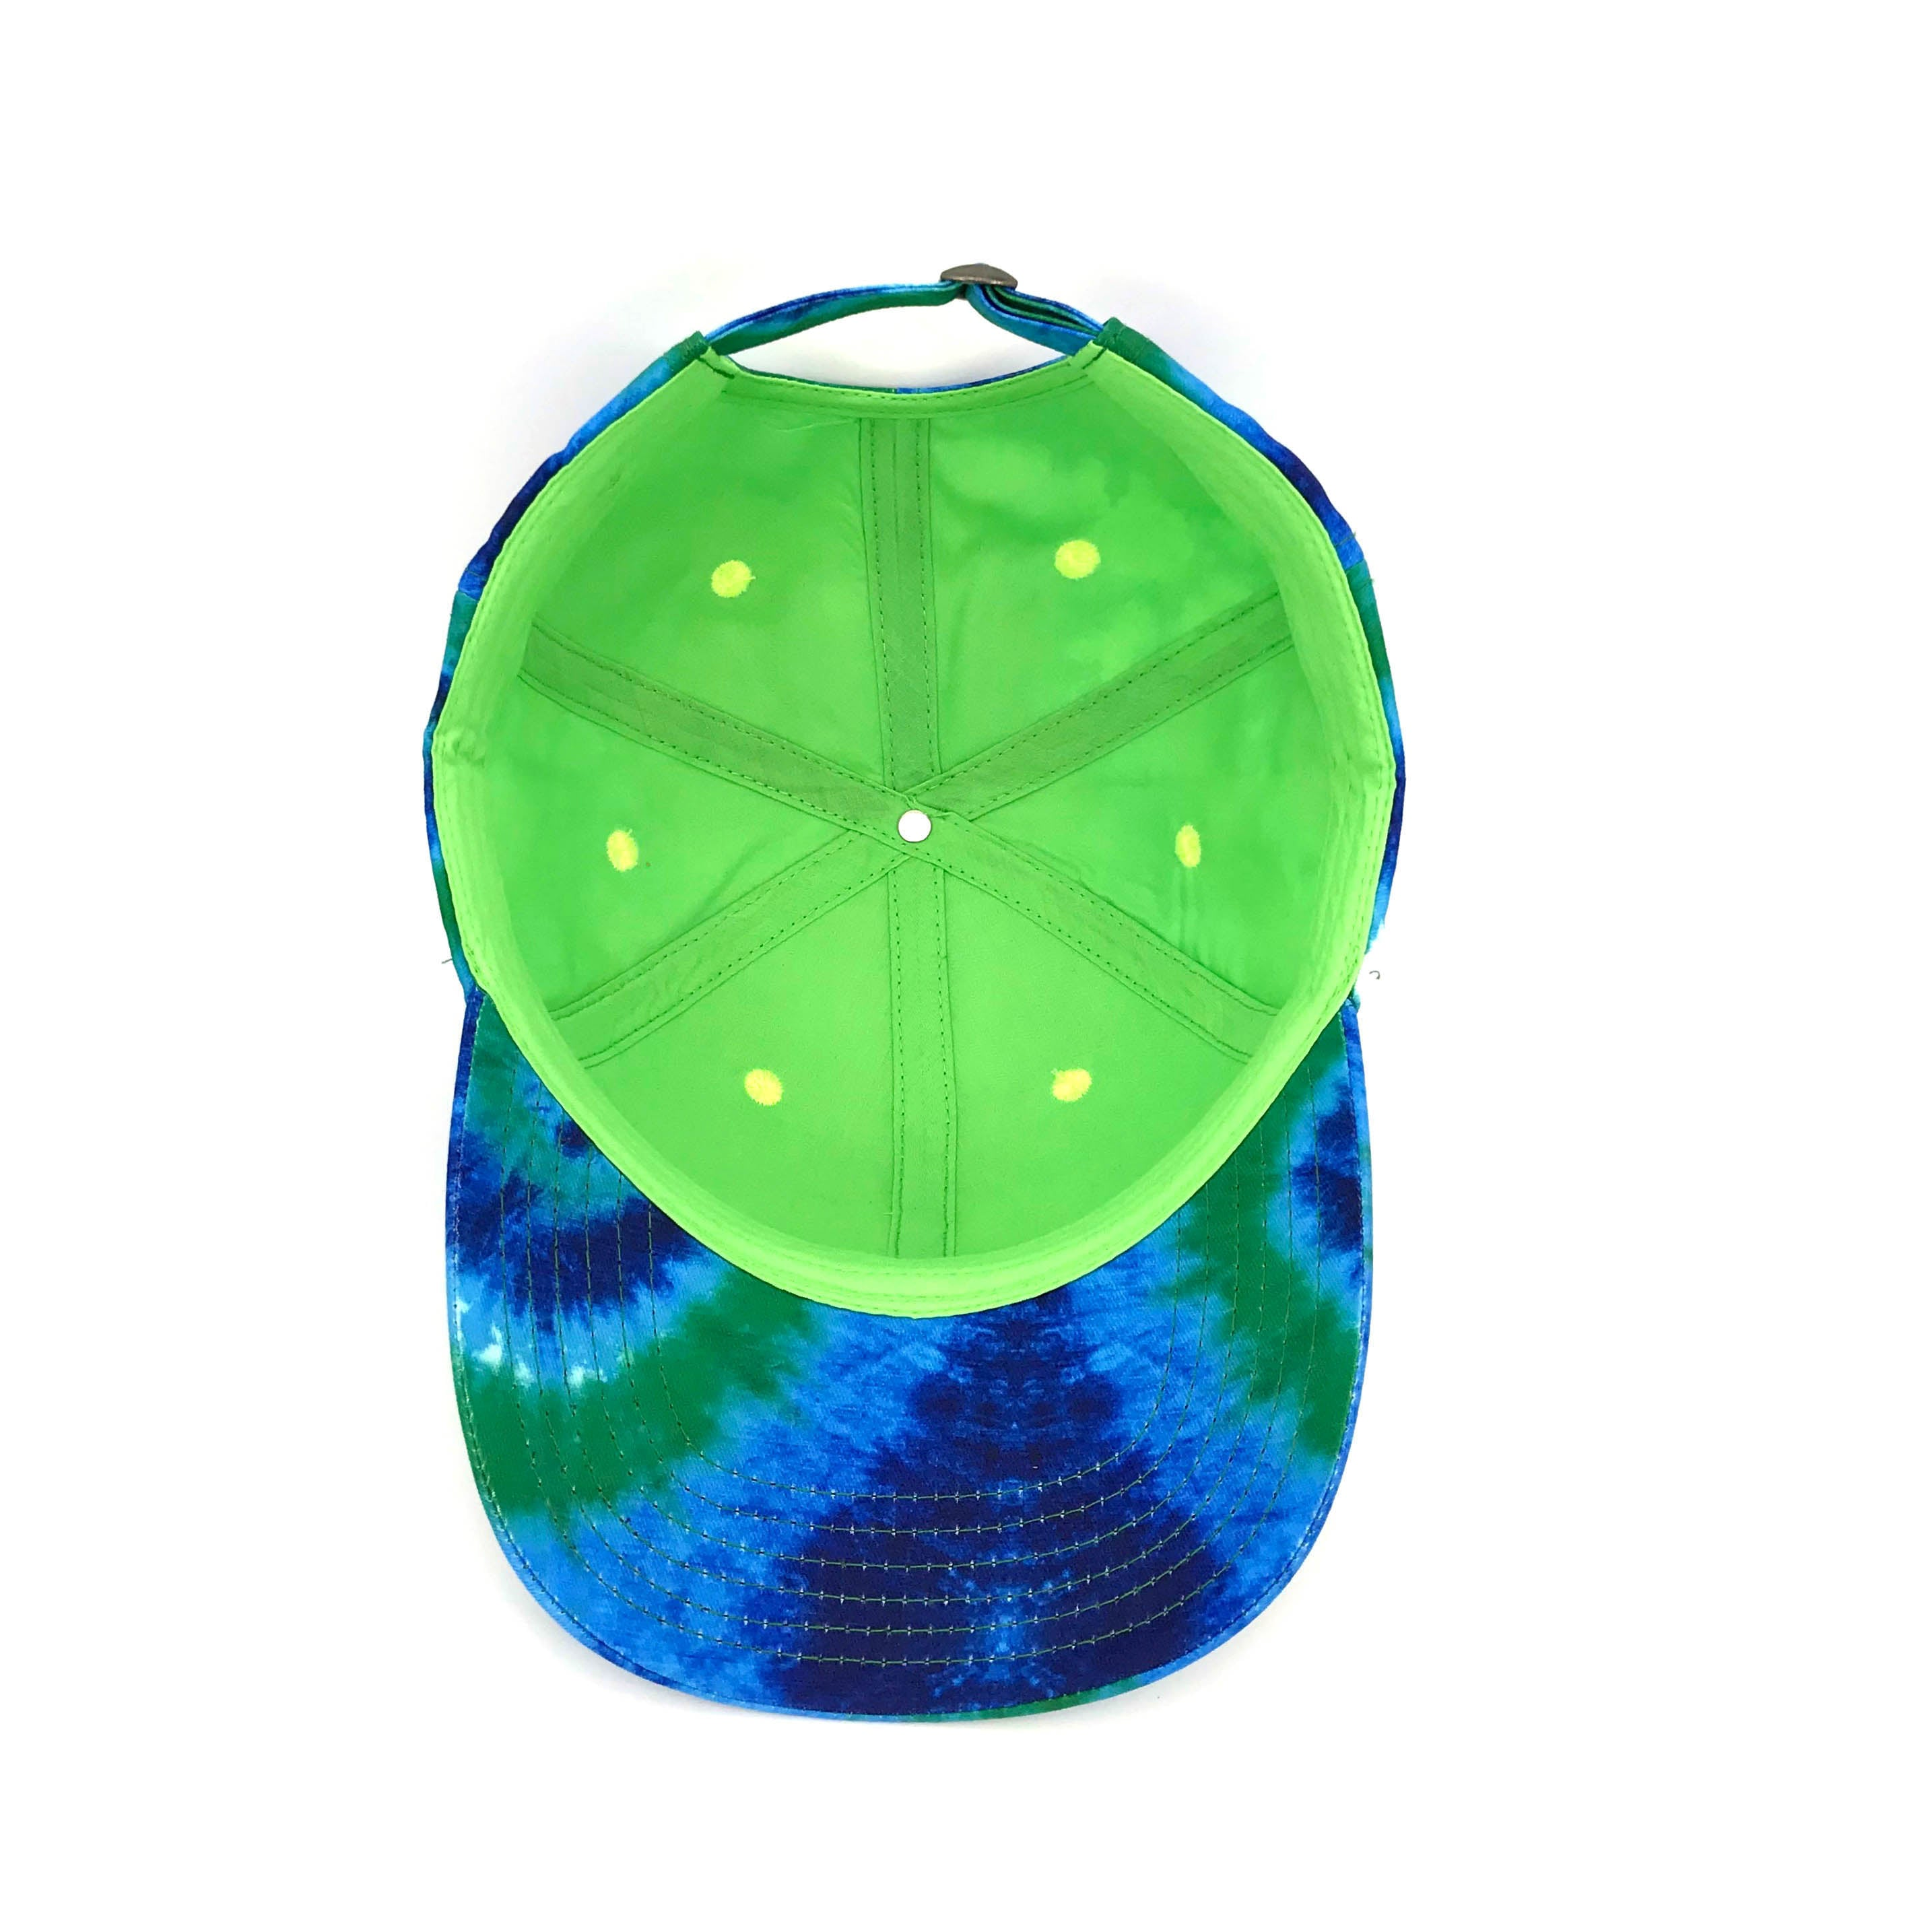 STR3AK SSP LEISURE CLUB COOL BREEZE TIE-DYE CAP